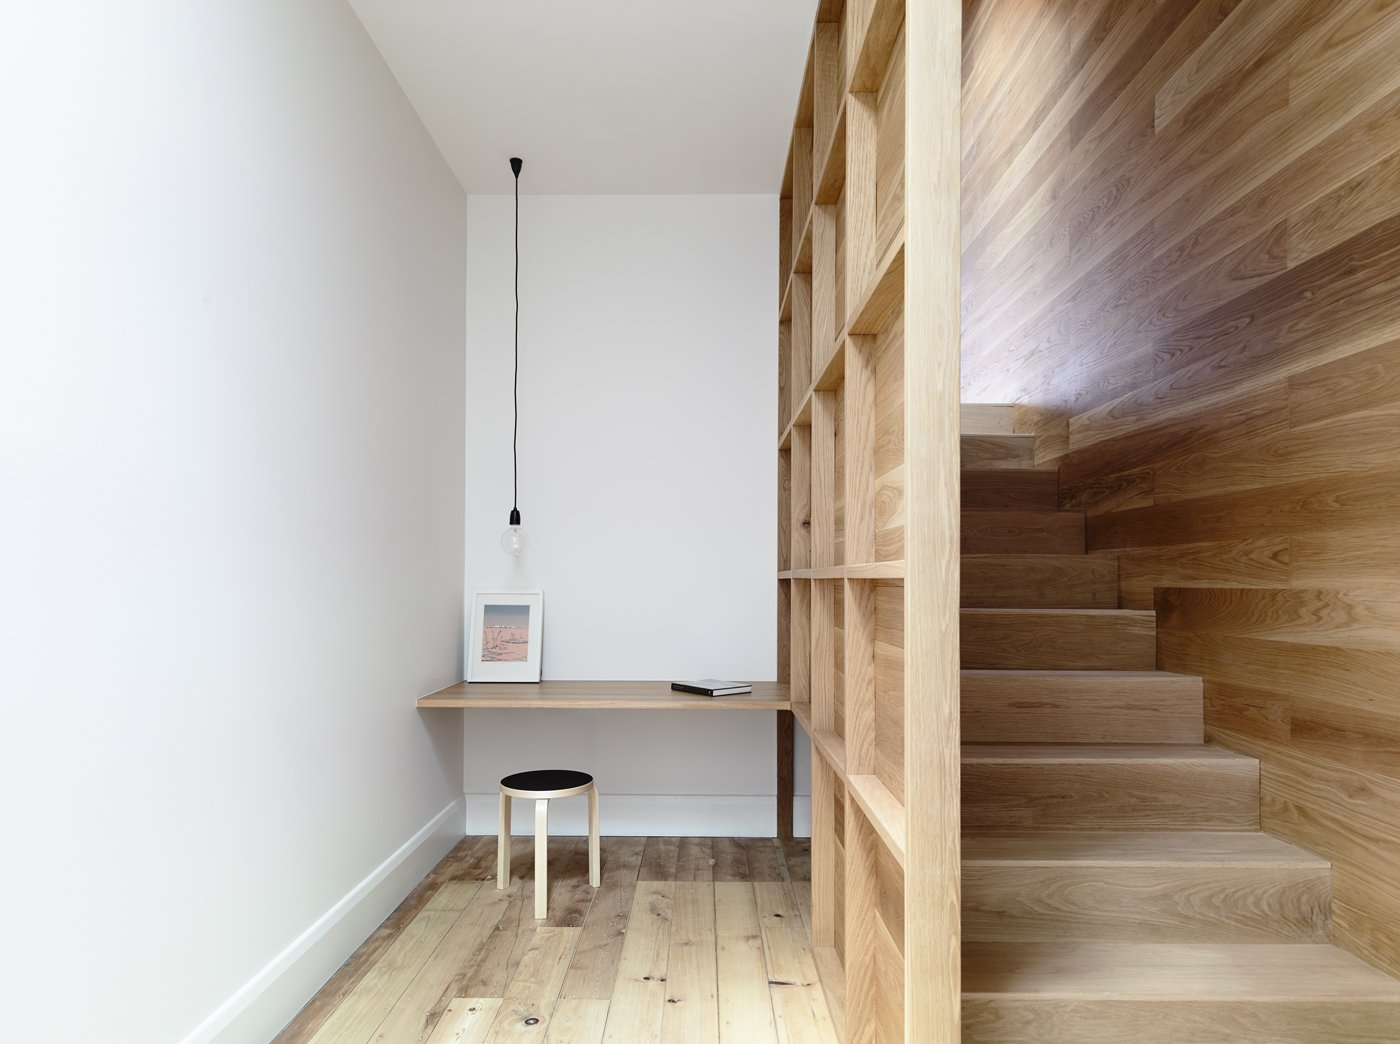 A central winding staircase connects the original house to the new addition. Exposed framing flanking the staircase creates an intimate study with plenty of shelving space. A Nud pendant light from Great Dane hangs above the built-in desk.  Lush Hill by Laura C. Mallonee